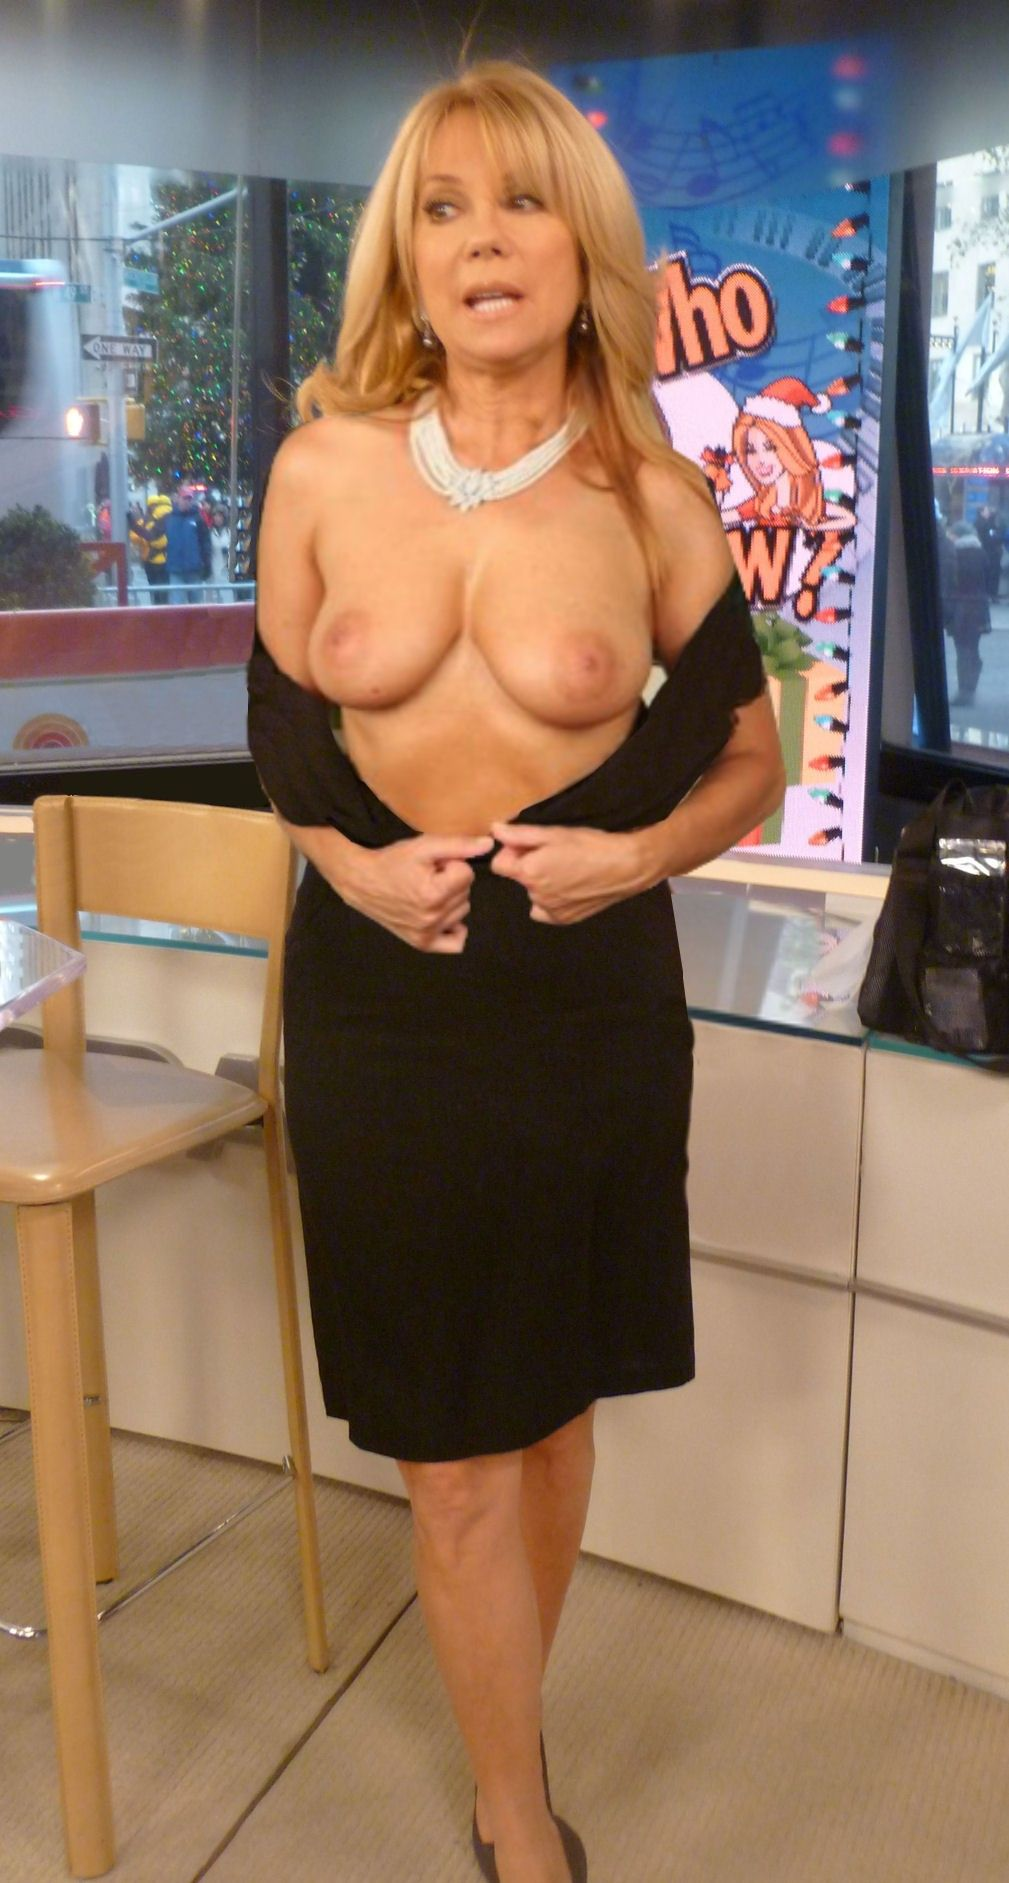 Naked pictures of kathie lee gifford